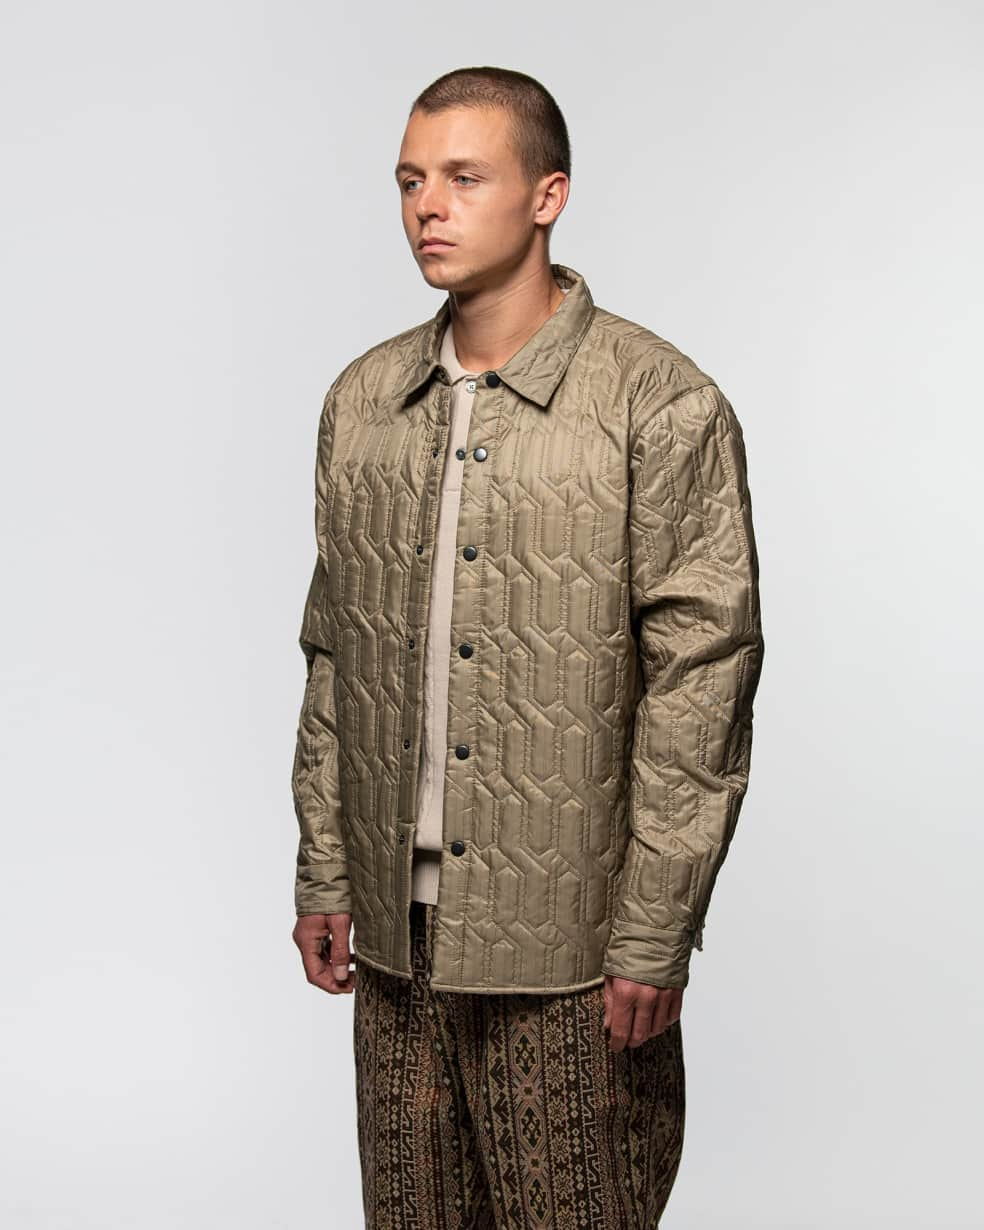 Stüssy Quilted Insulated Long Sleeve Shirt - Beige | Shirt by Stüssy 3